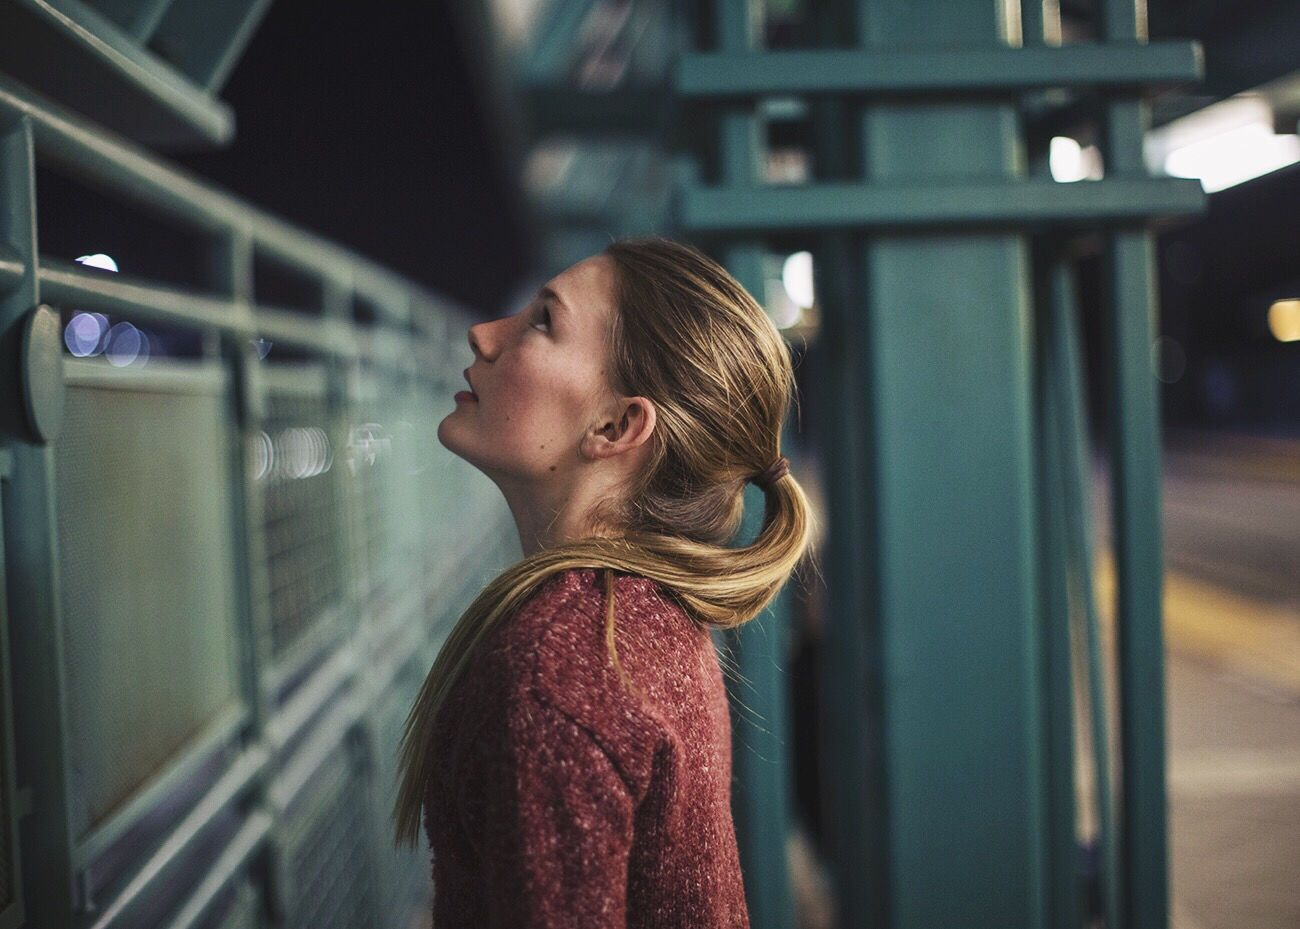 Dancerslife San Diego Train Station Night Photography Portrait Color Portrait California Love Learn & Shoot: After Dark The Portraitist - 2016 EyeEm Awards Feel The Journey People And Places